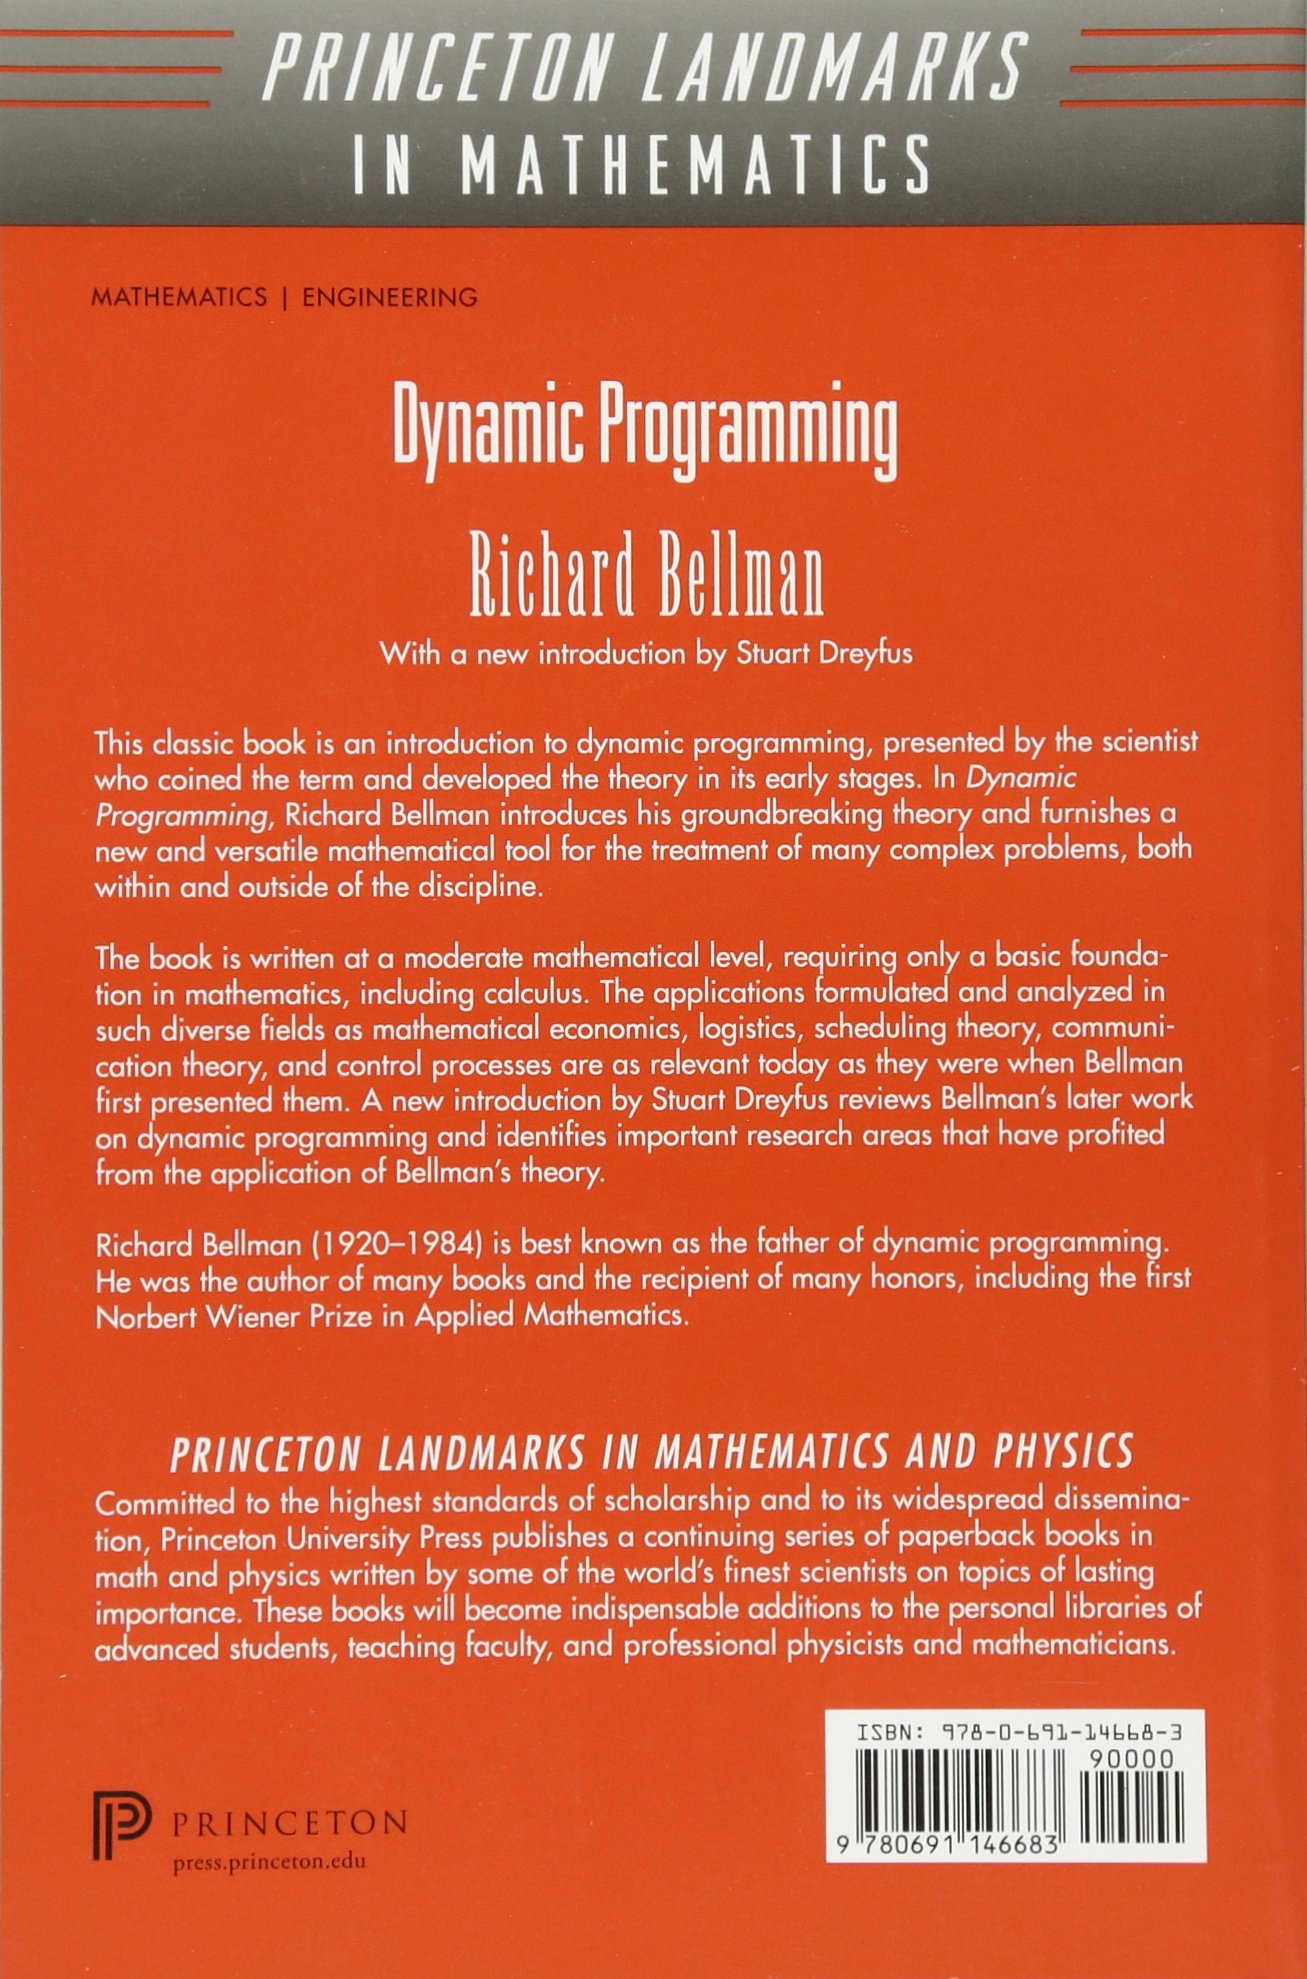 Dynamic Programming (Princeton Landmarks in Mathematics and Physics